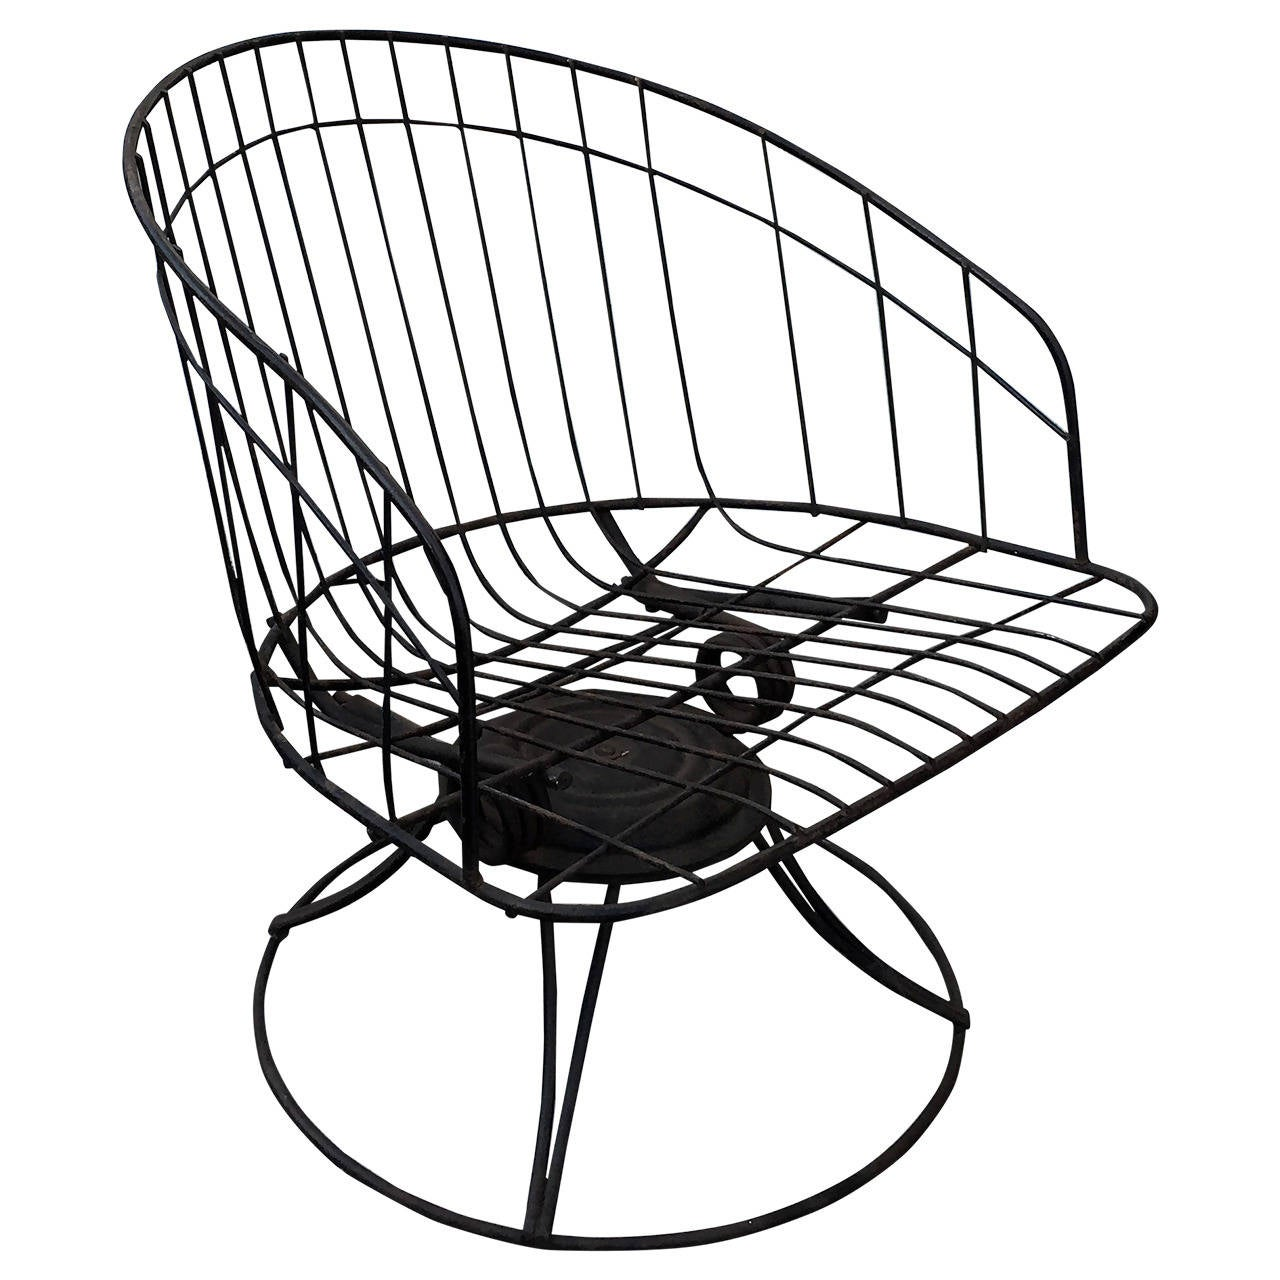 Homecrest Metal Wire Barrel Chair For Sale at 1stdibs